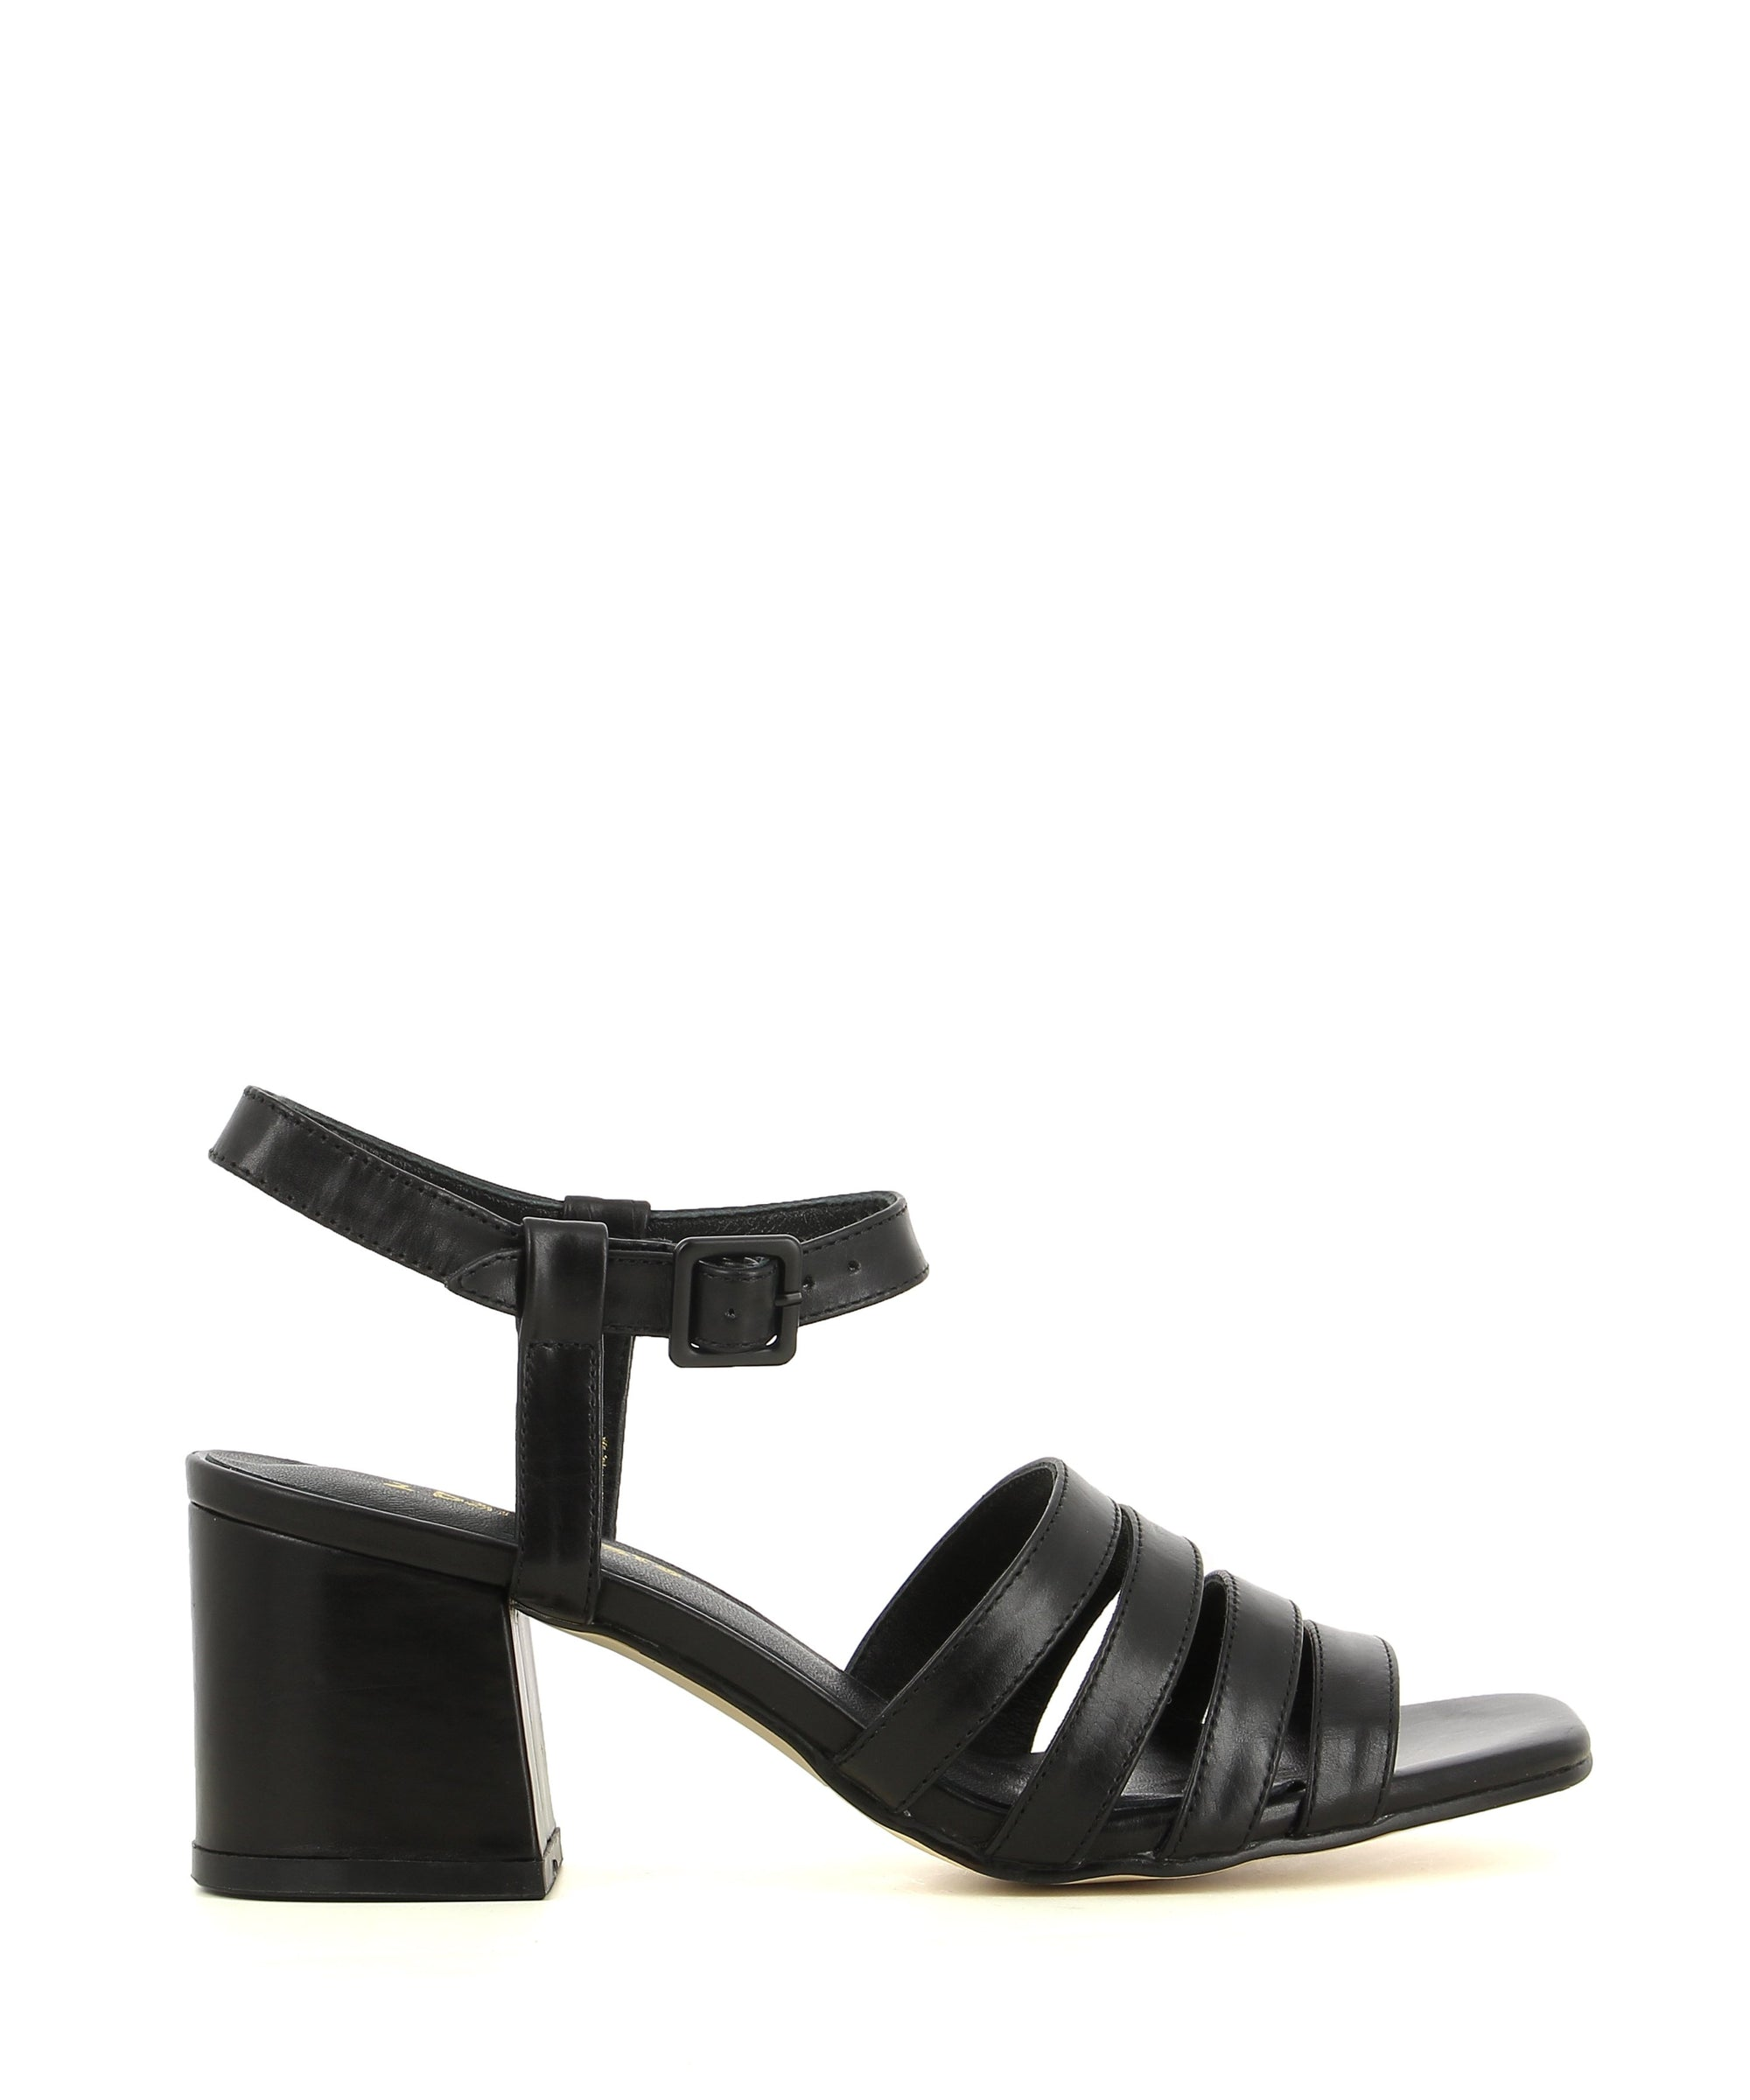 A black leather sandal that has an ankle buckle fastening, a 6.5cm block heel, 4 thin leather straps over the toe and a open square toe by 2 Baia Vista.